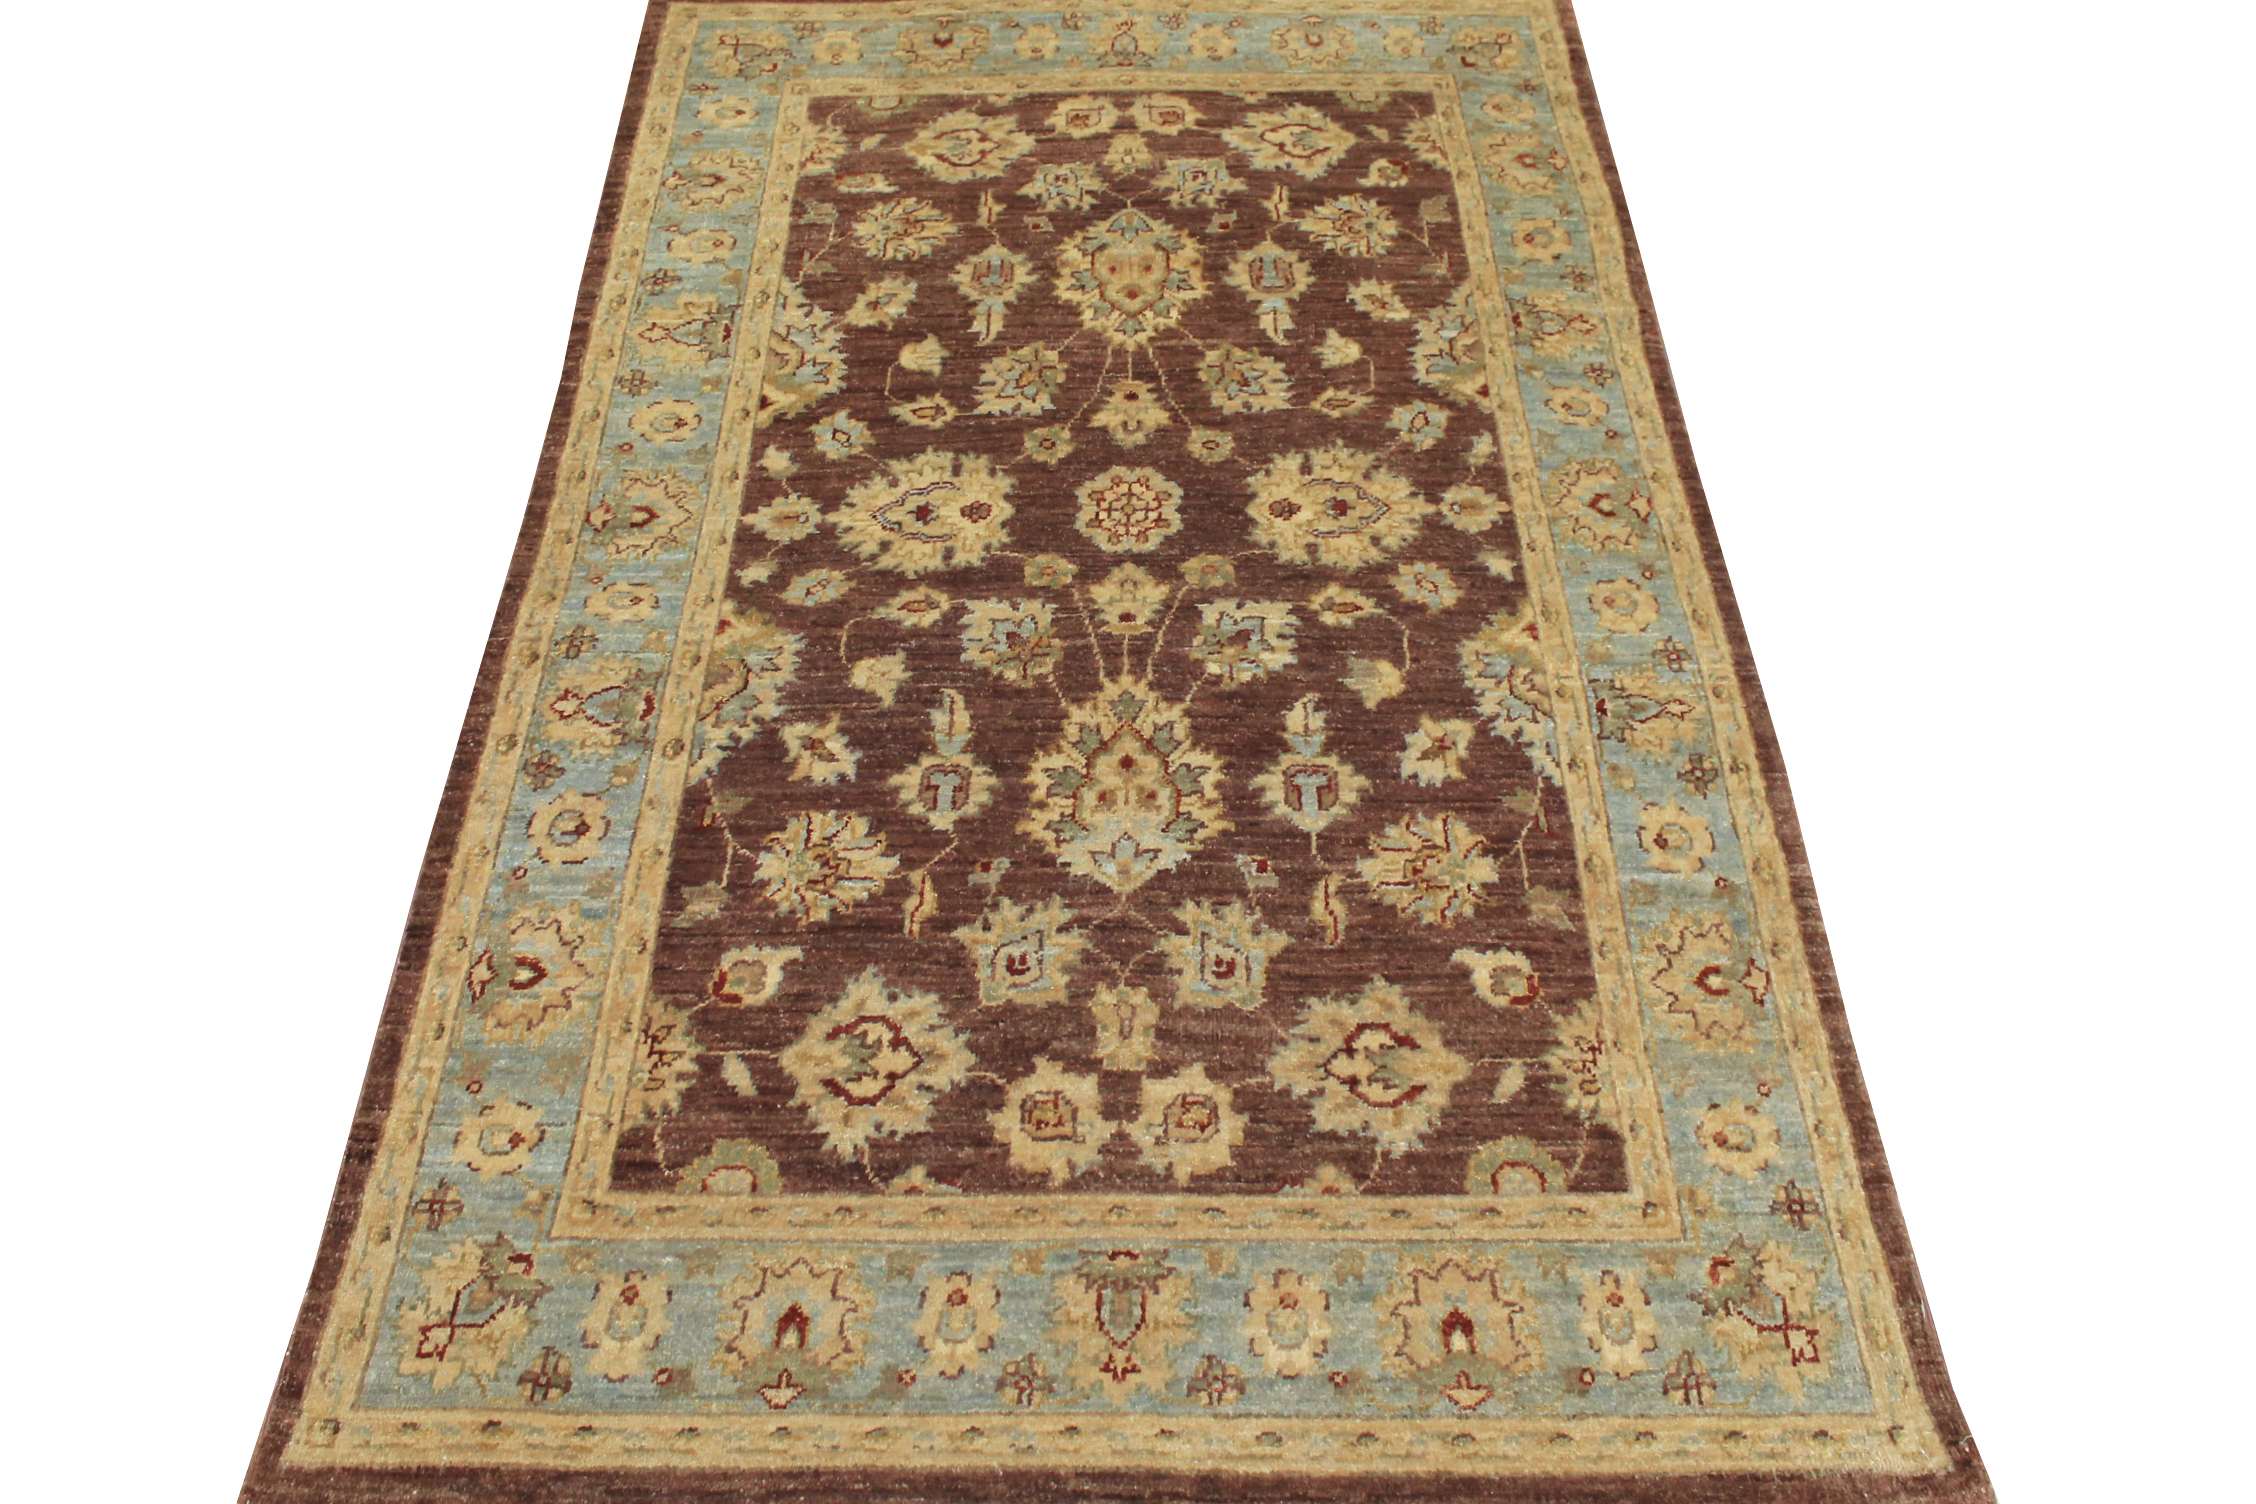 4x6 Peshawar Hand Knotted Wool Area Rug - MR10295